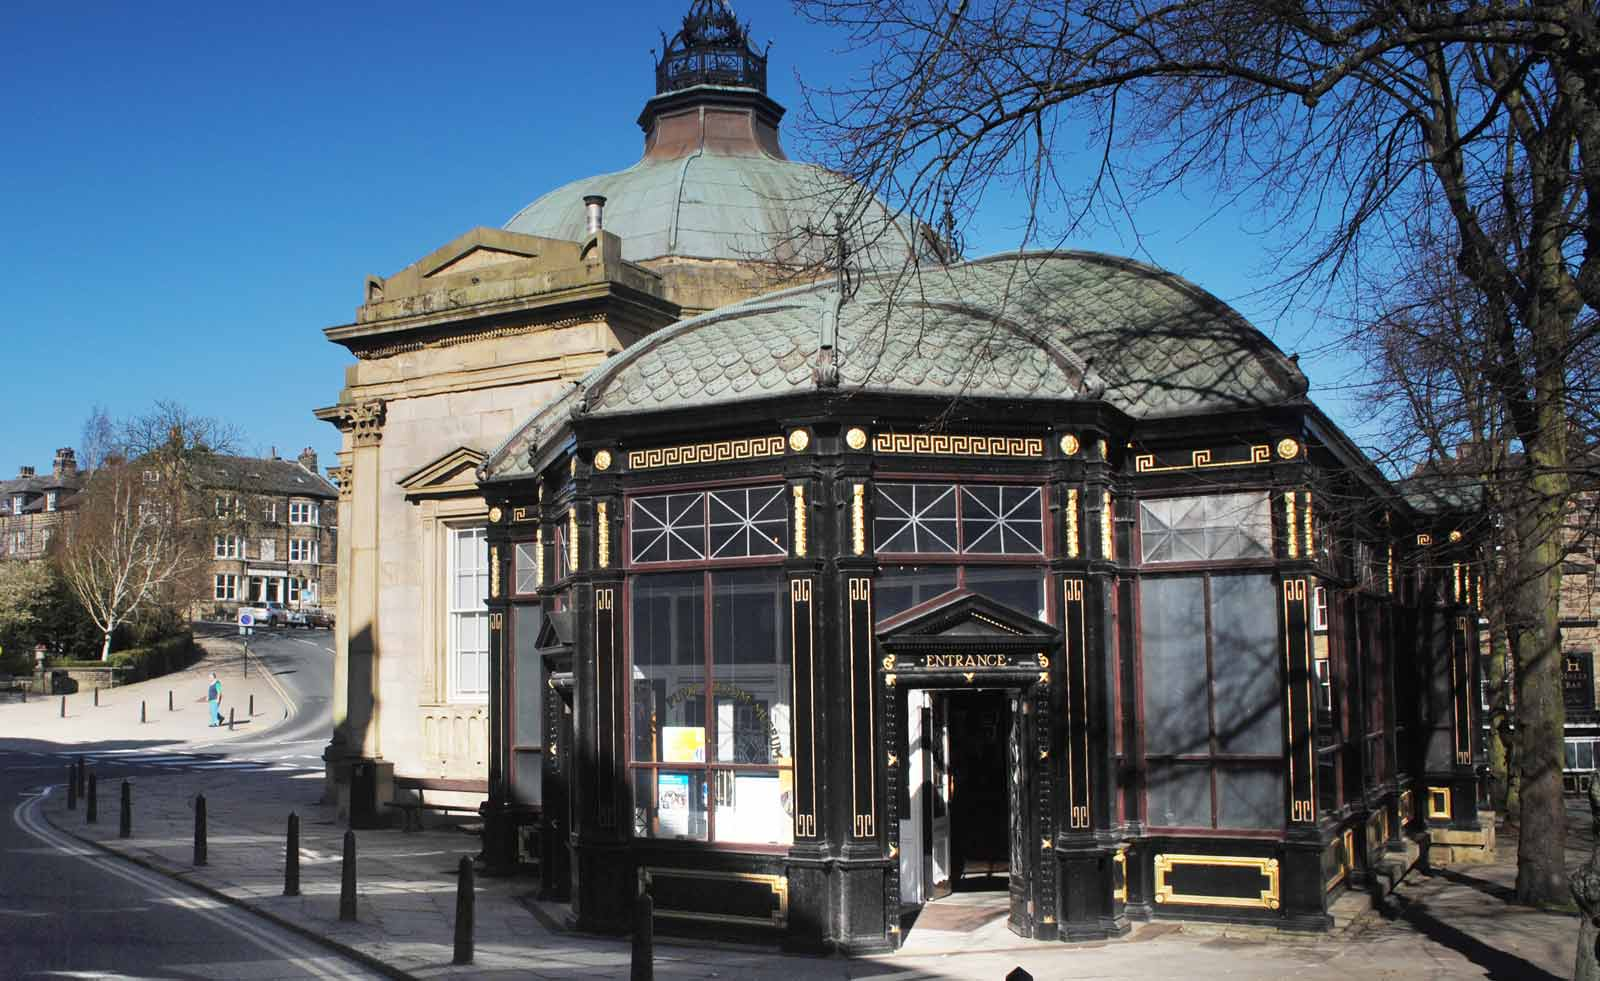 The Pump Room in Harrogate